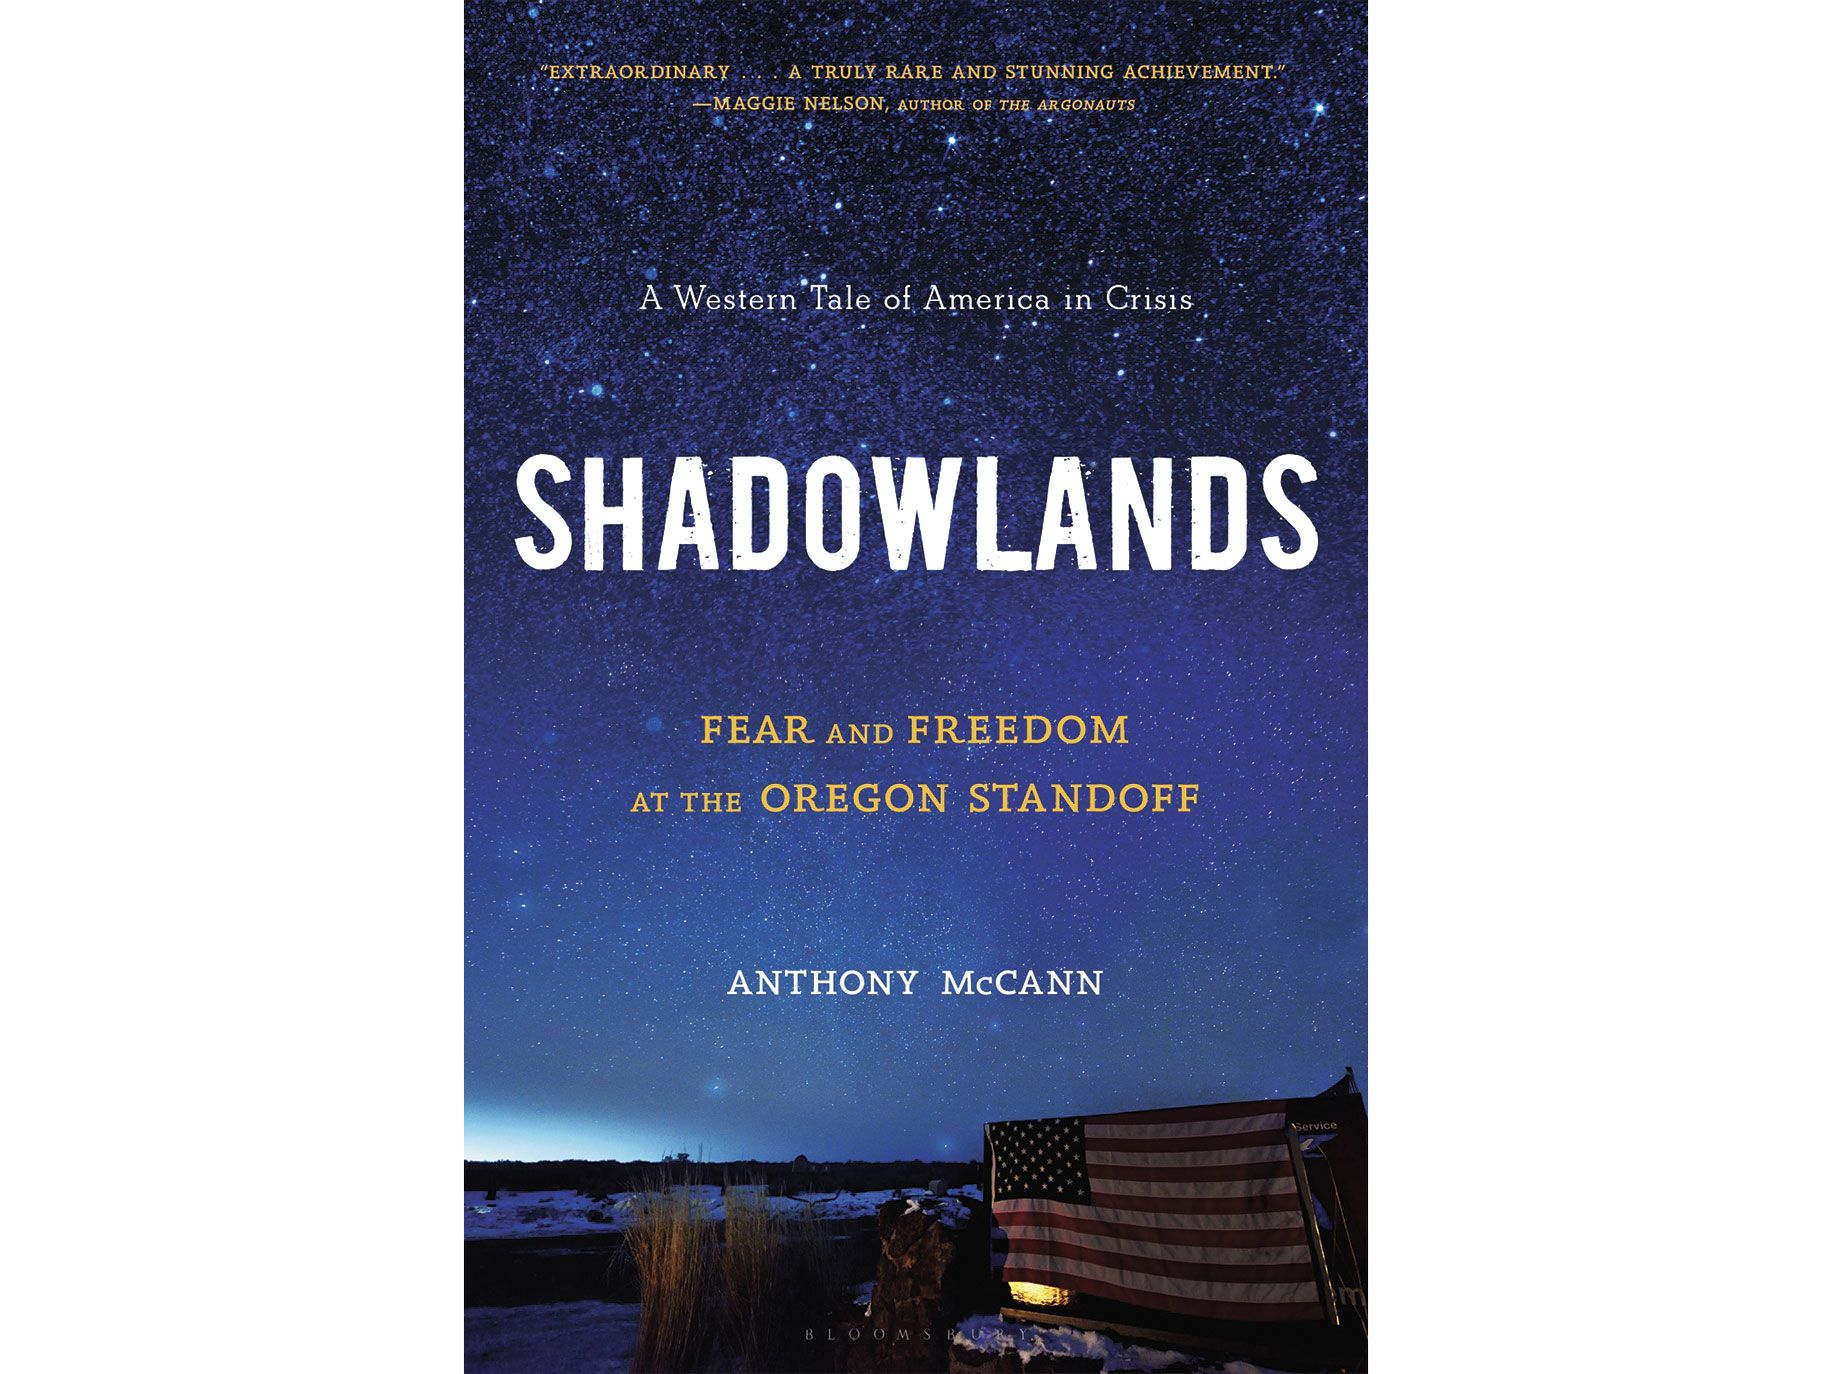 Shadowlands: Fearand Freedom at the Oregon Standoff by Anthony McCann, Bloomsbury, 448 pages, $30